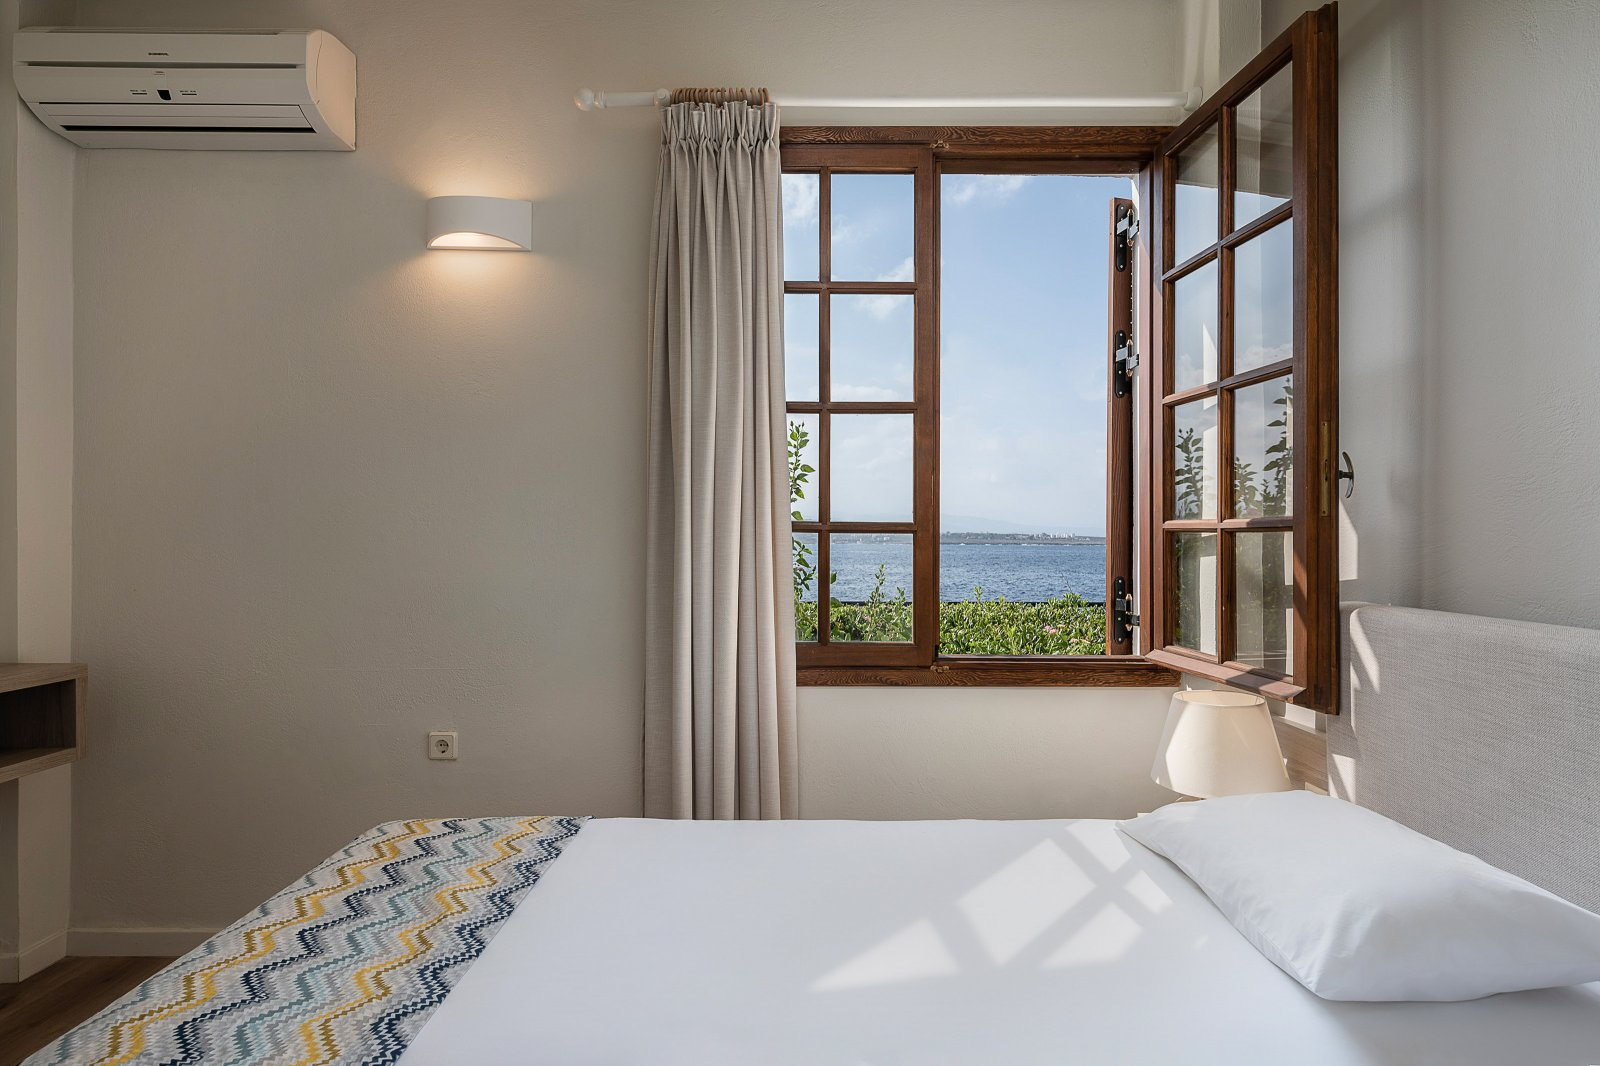 https://www.alianthos-suites.gr/wp-content/uploads/2016/02/Two-bedroom-apart_bedroom-view-2-22.jpg